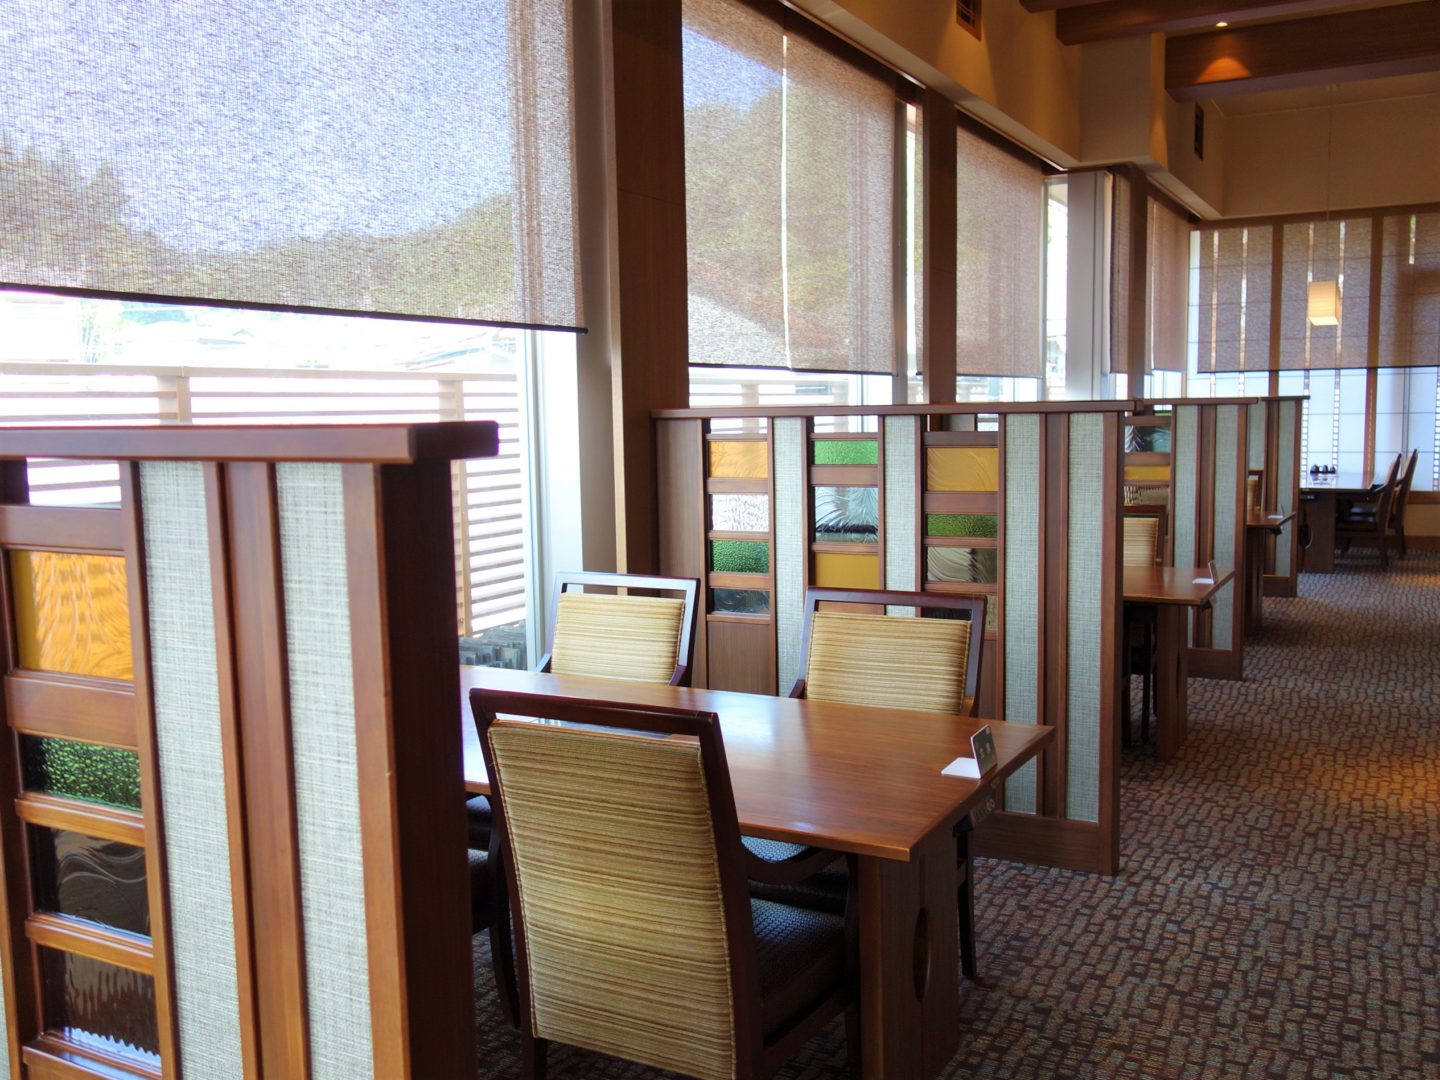 Restaurant serving breakfast at Kasuien Minami